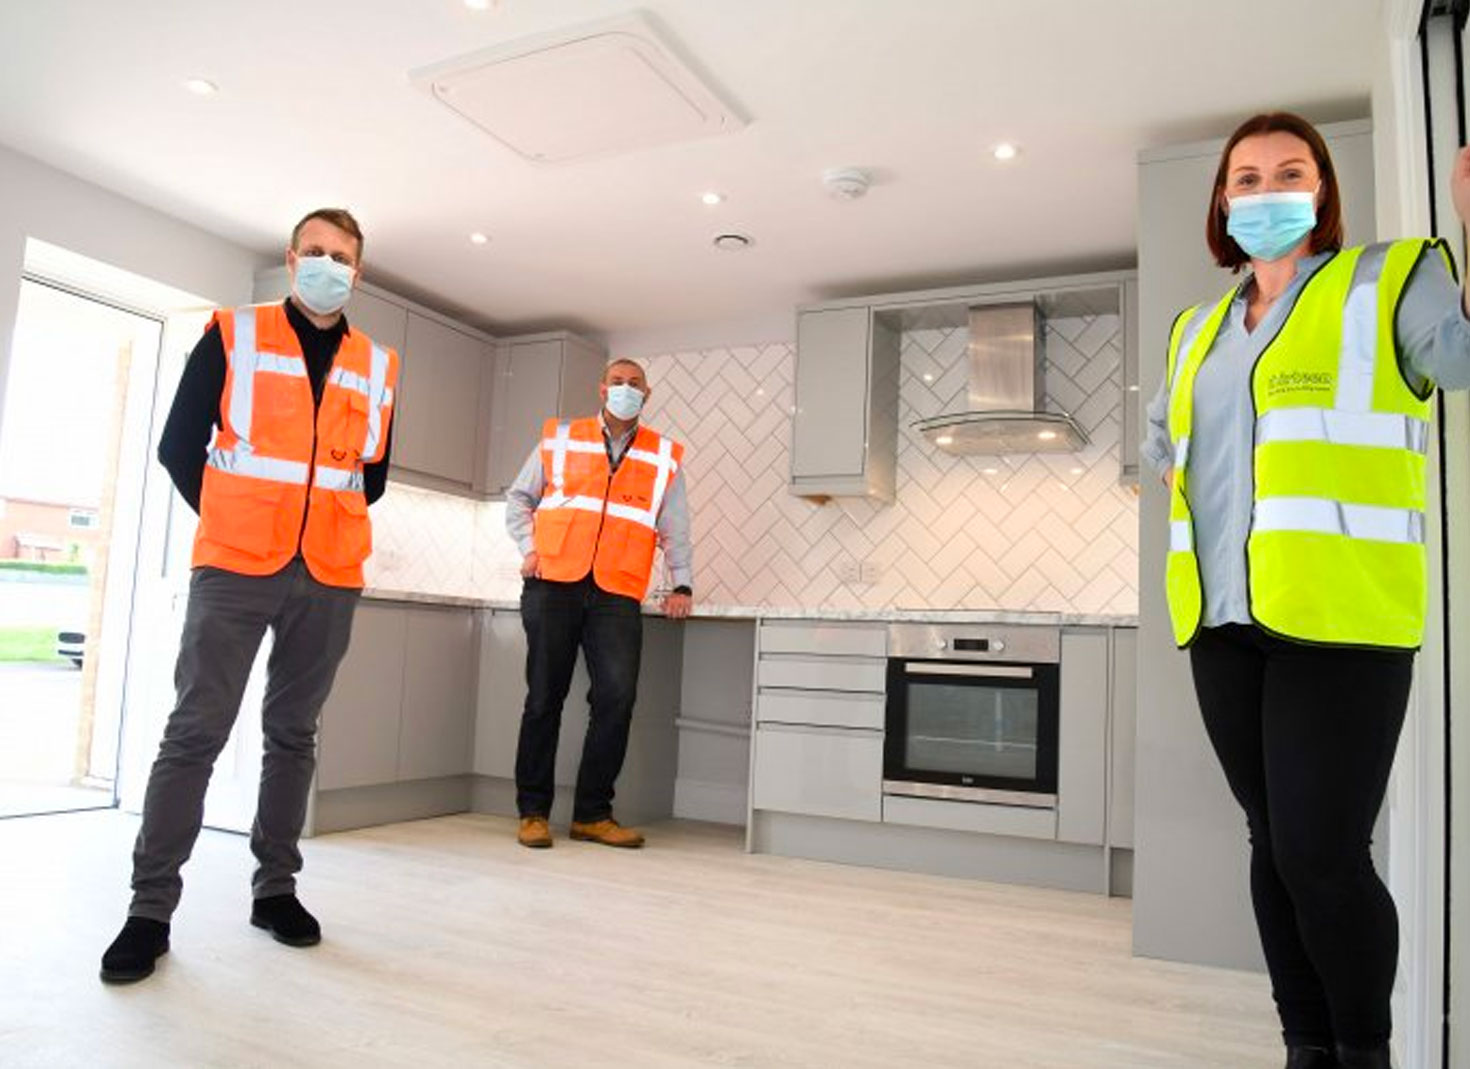 Green technology put to the test in Middlesbrough home